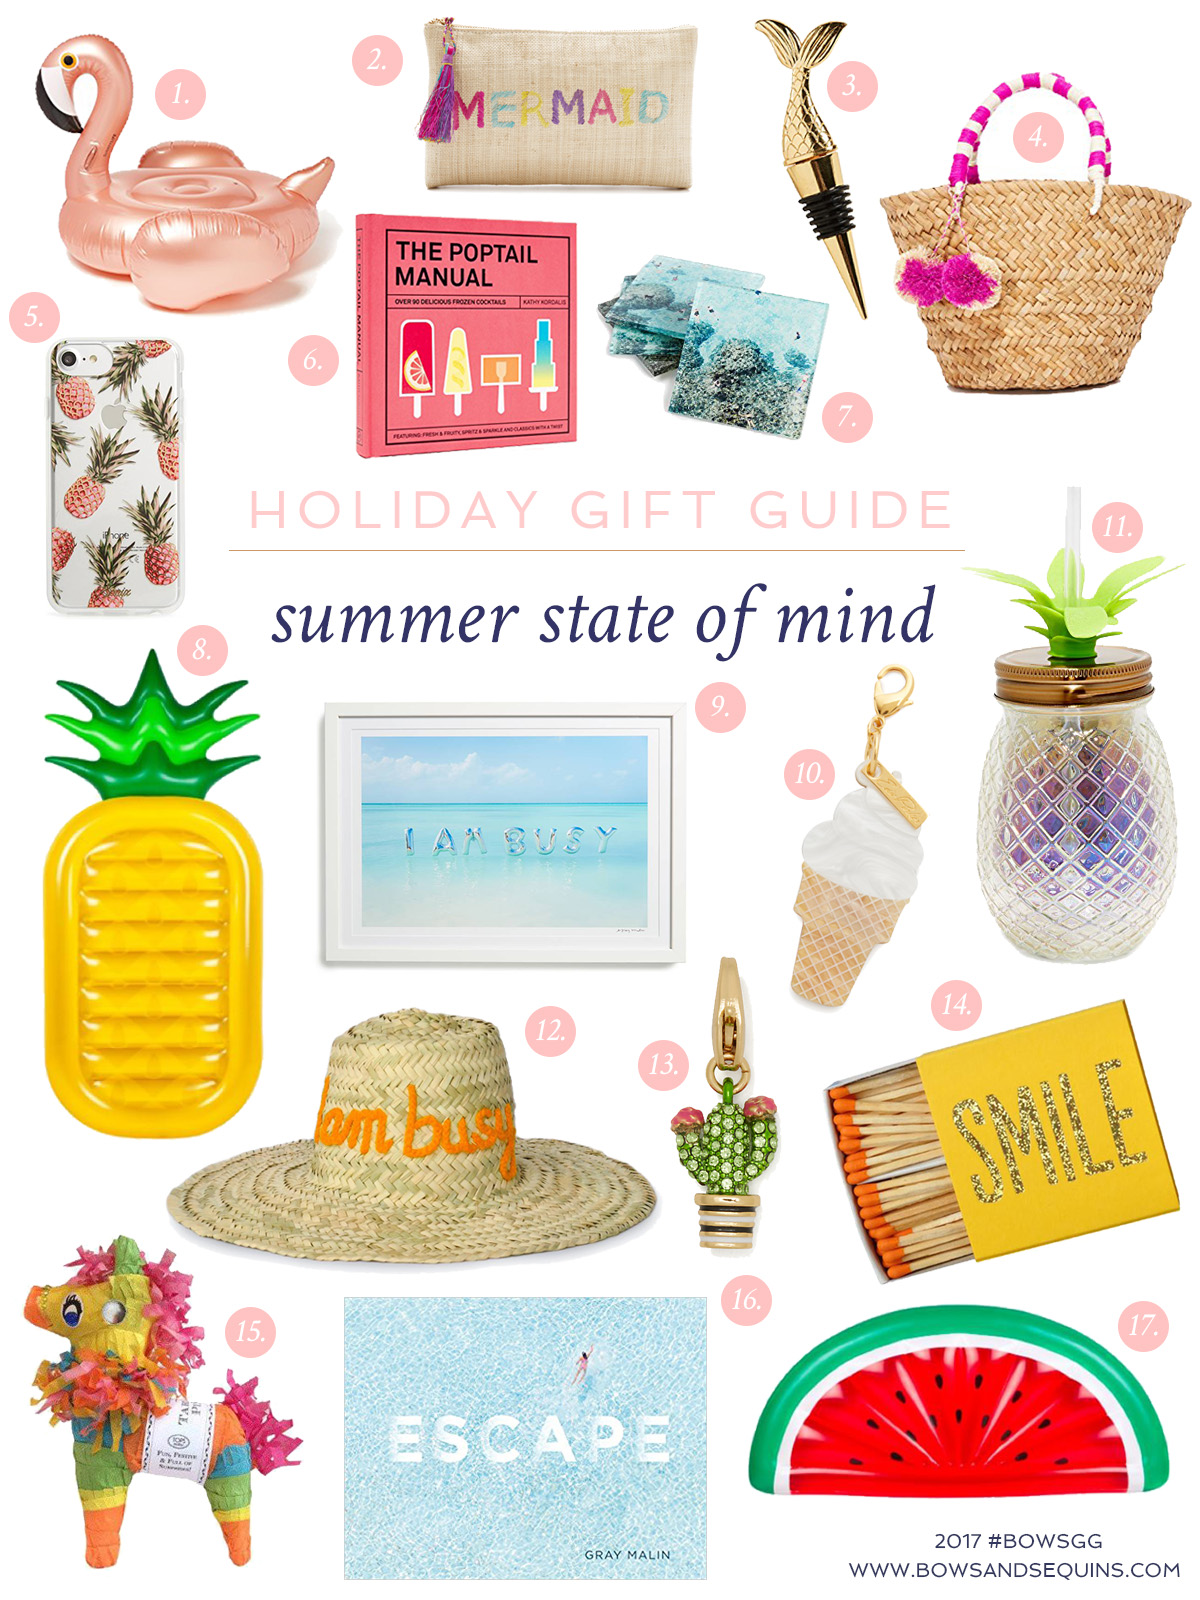 Jessica Sturdy shares the best gifts to give the girl that's always in a summer state of mind. Lots of colorful, cheery gifts to celebrate that endless summer mindset!